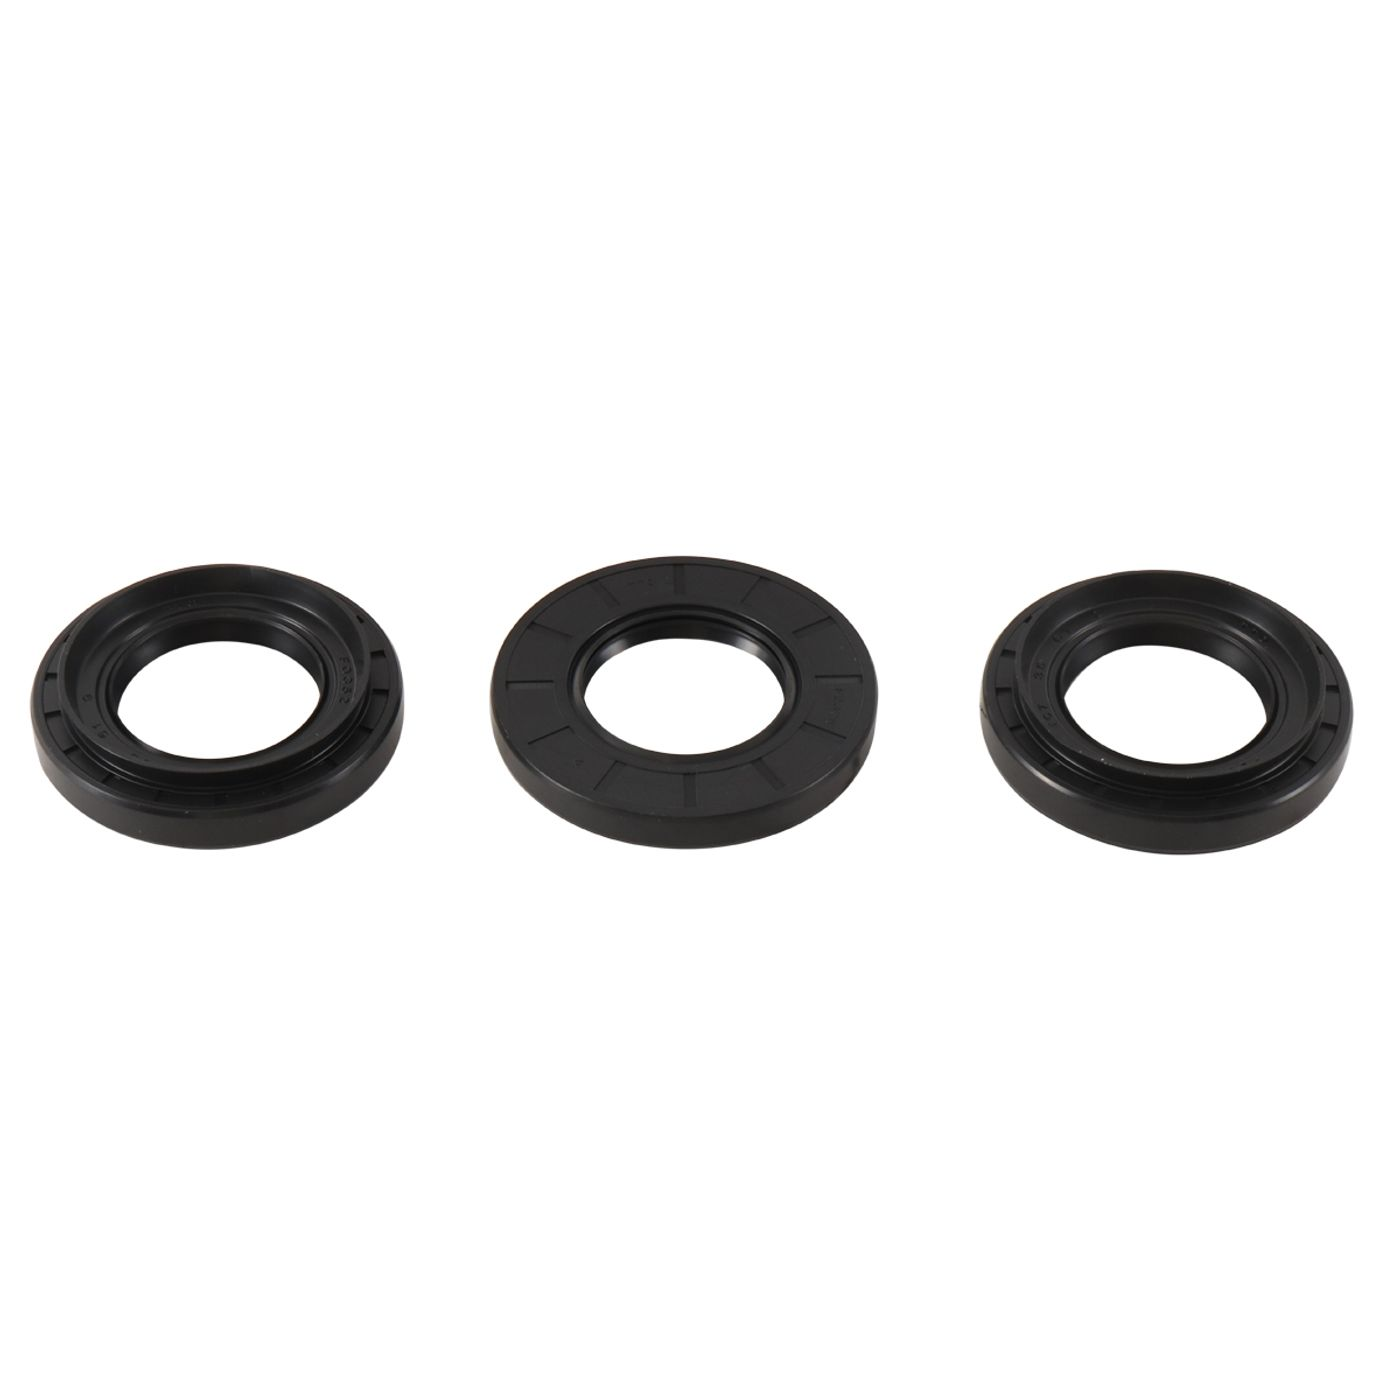 Wrp Diff Seal Kits - WRP252026-5 image